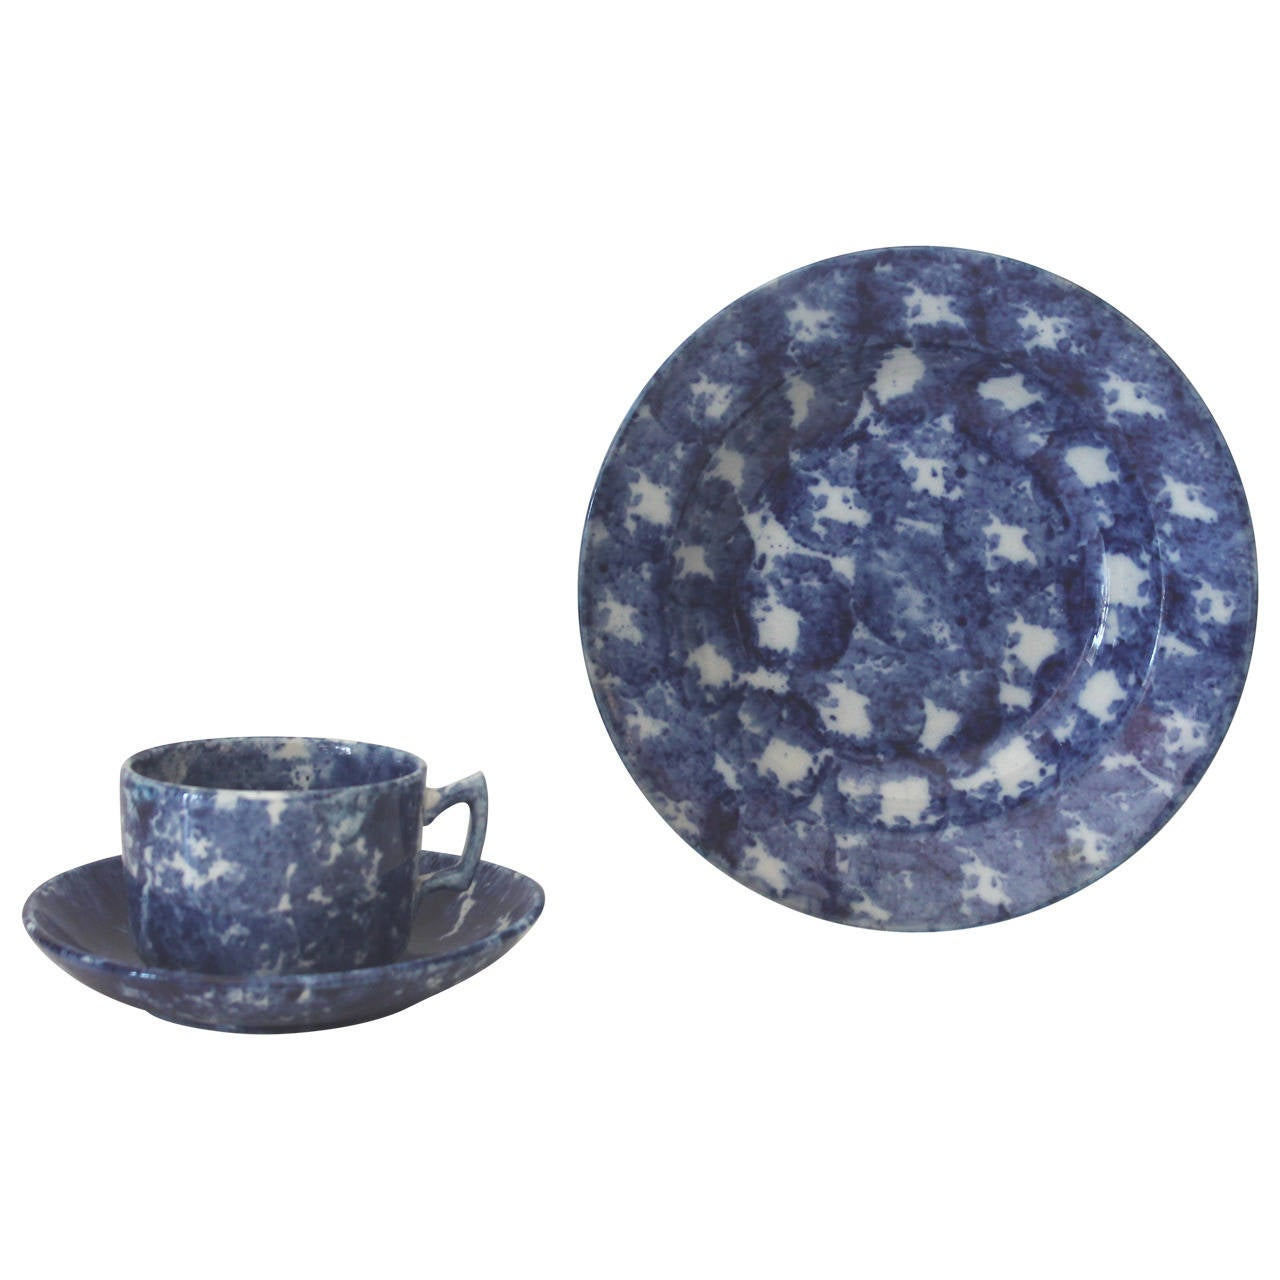 19th Century Spongeware Soup Bowl and Cup and Saucer